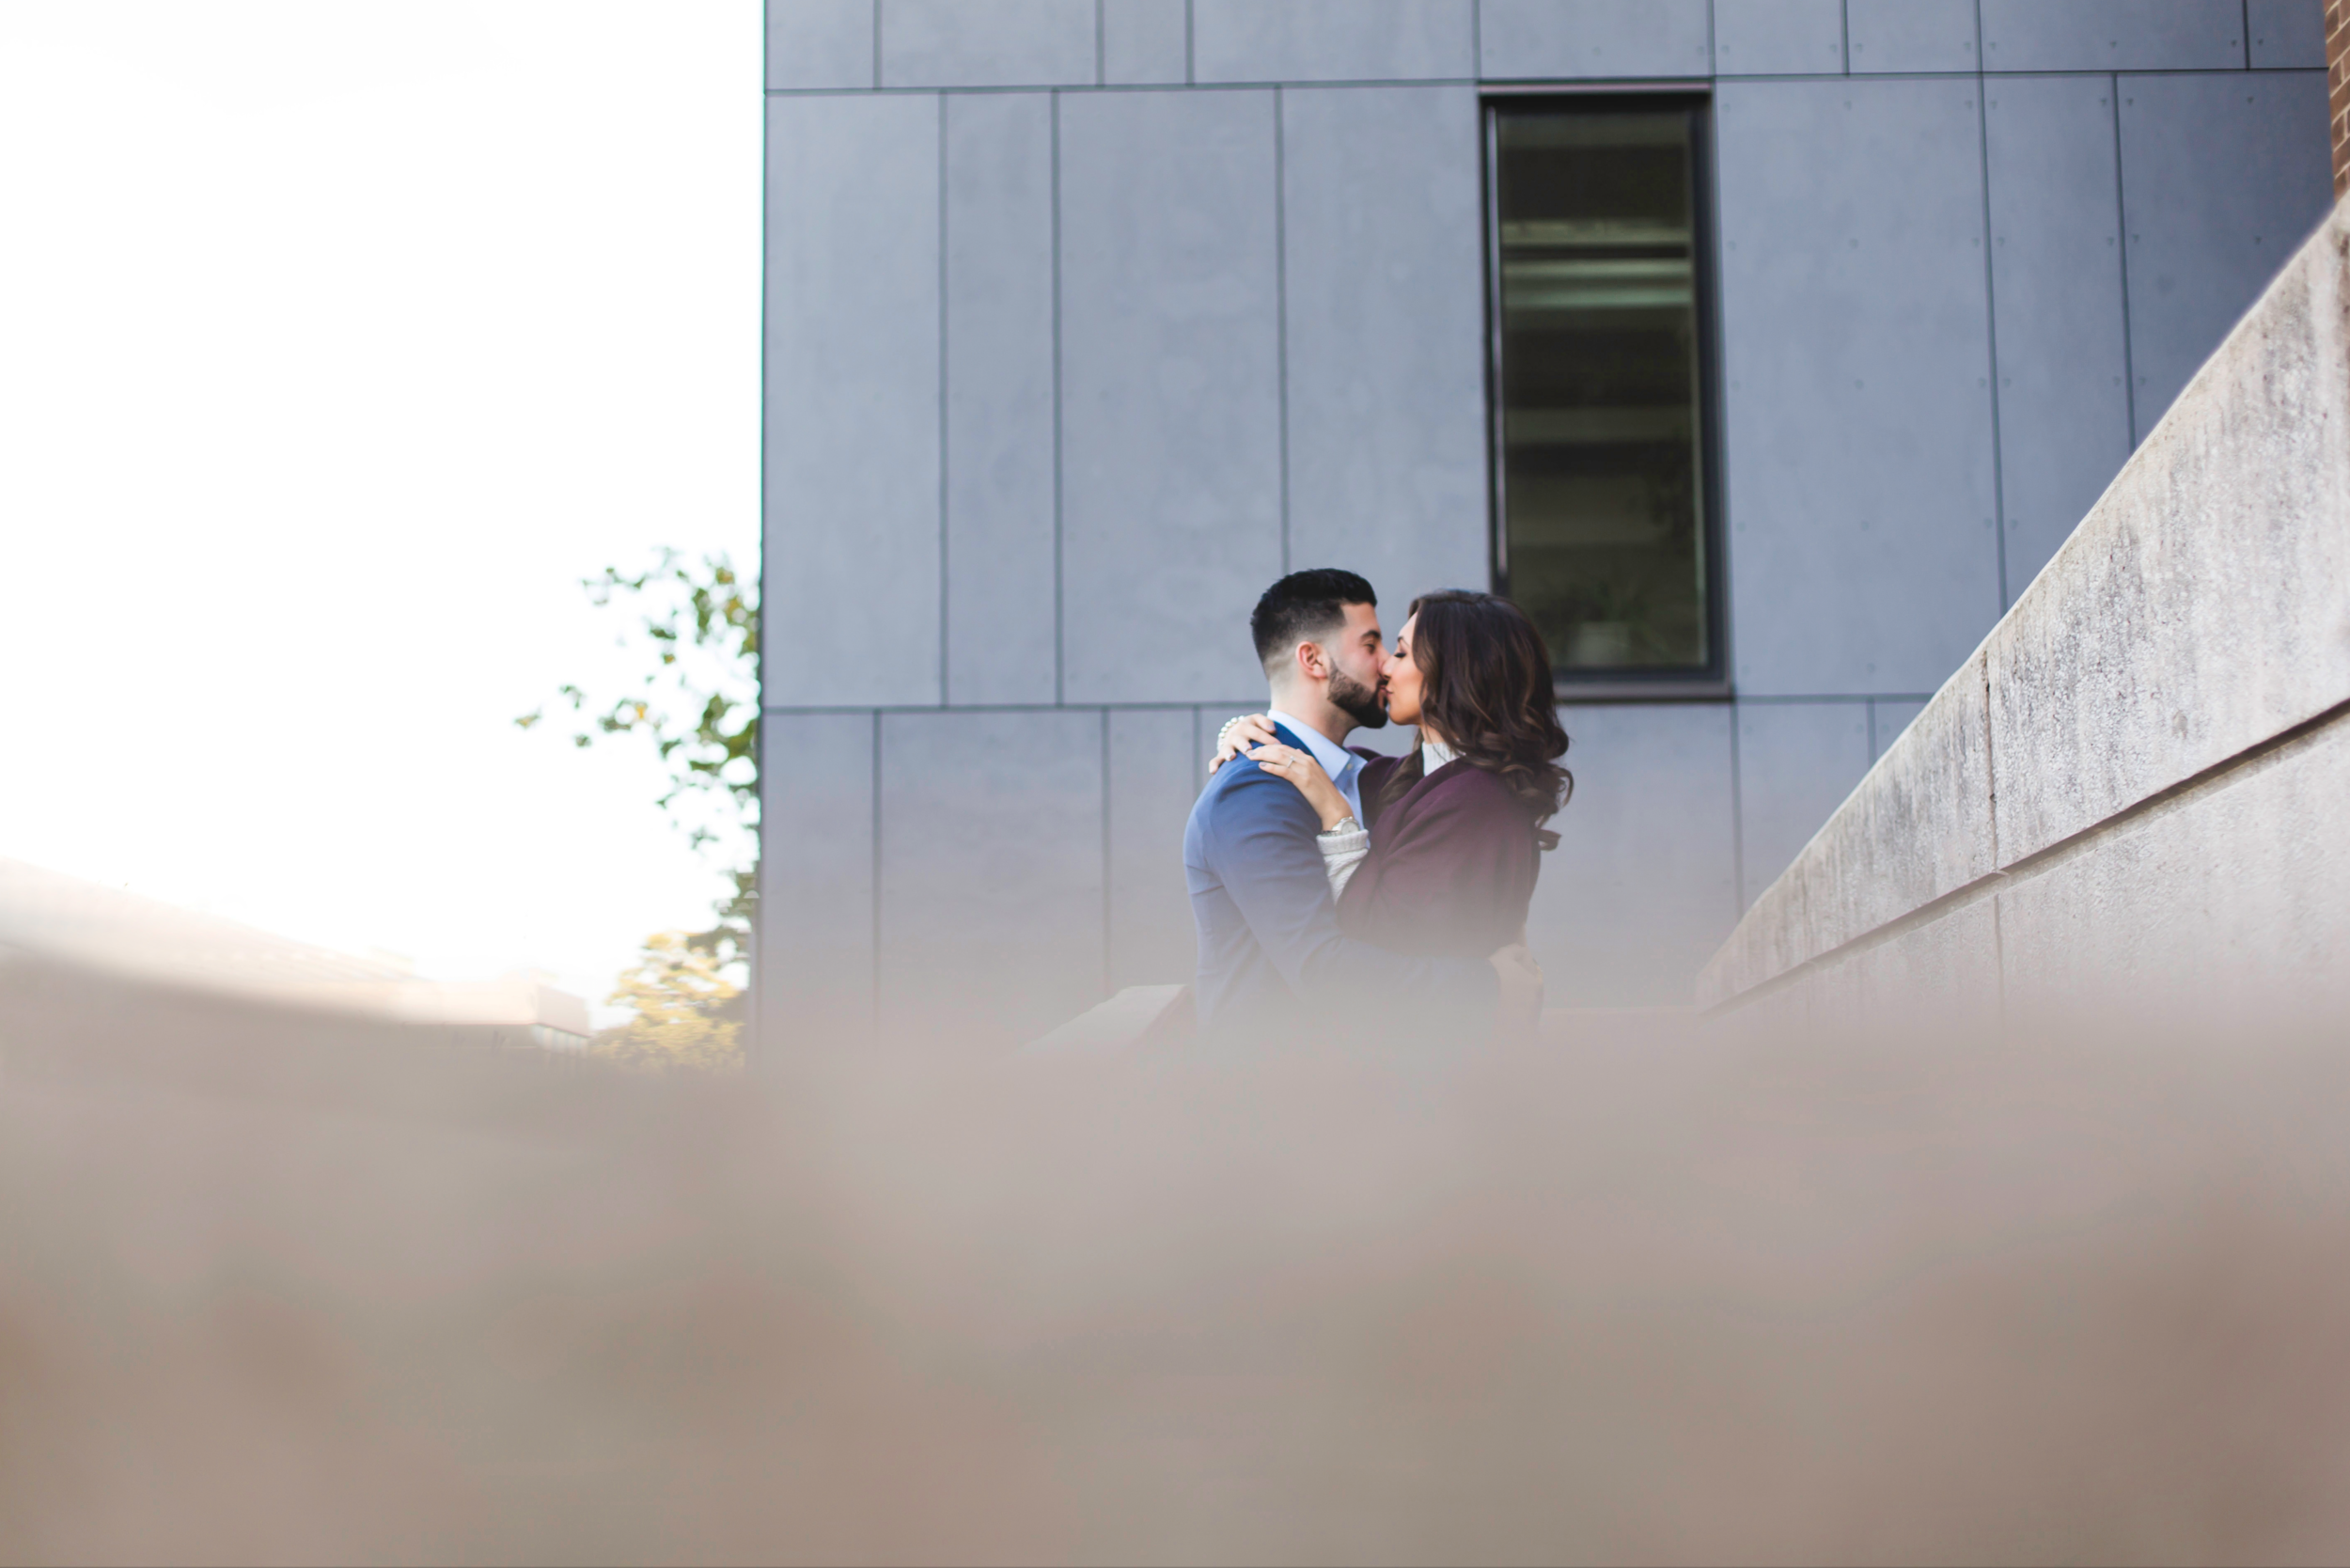 Engagement-Photography-McMaster-University-Campus-Hamilton-Burlington-Oakville-Niagara-Toronto-Wedding-Photographer-Moments-by-Lauren-Photo-Image-8.png